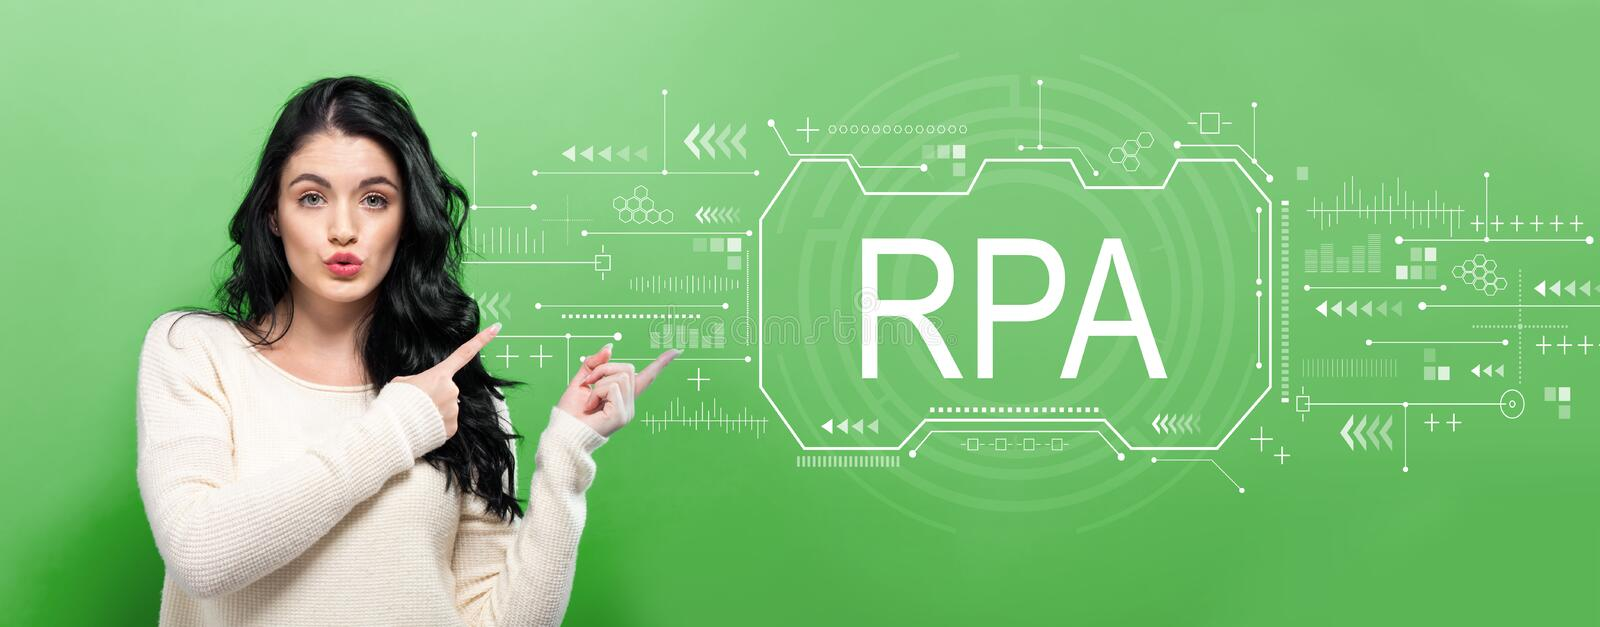 Robotic process automation concept with young woman royalty free stock image